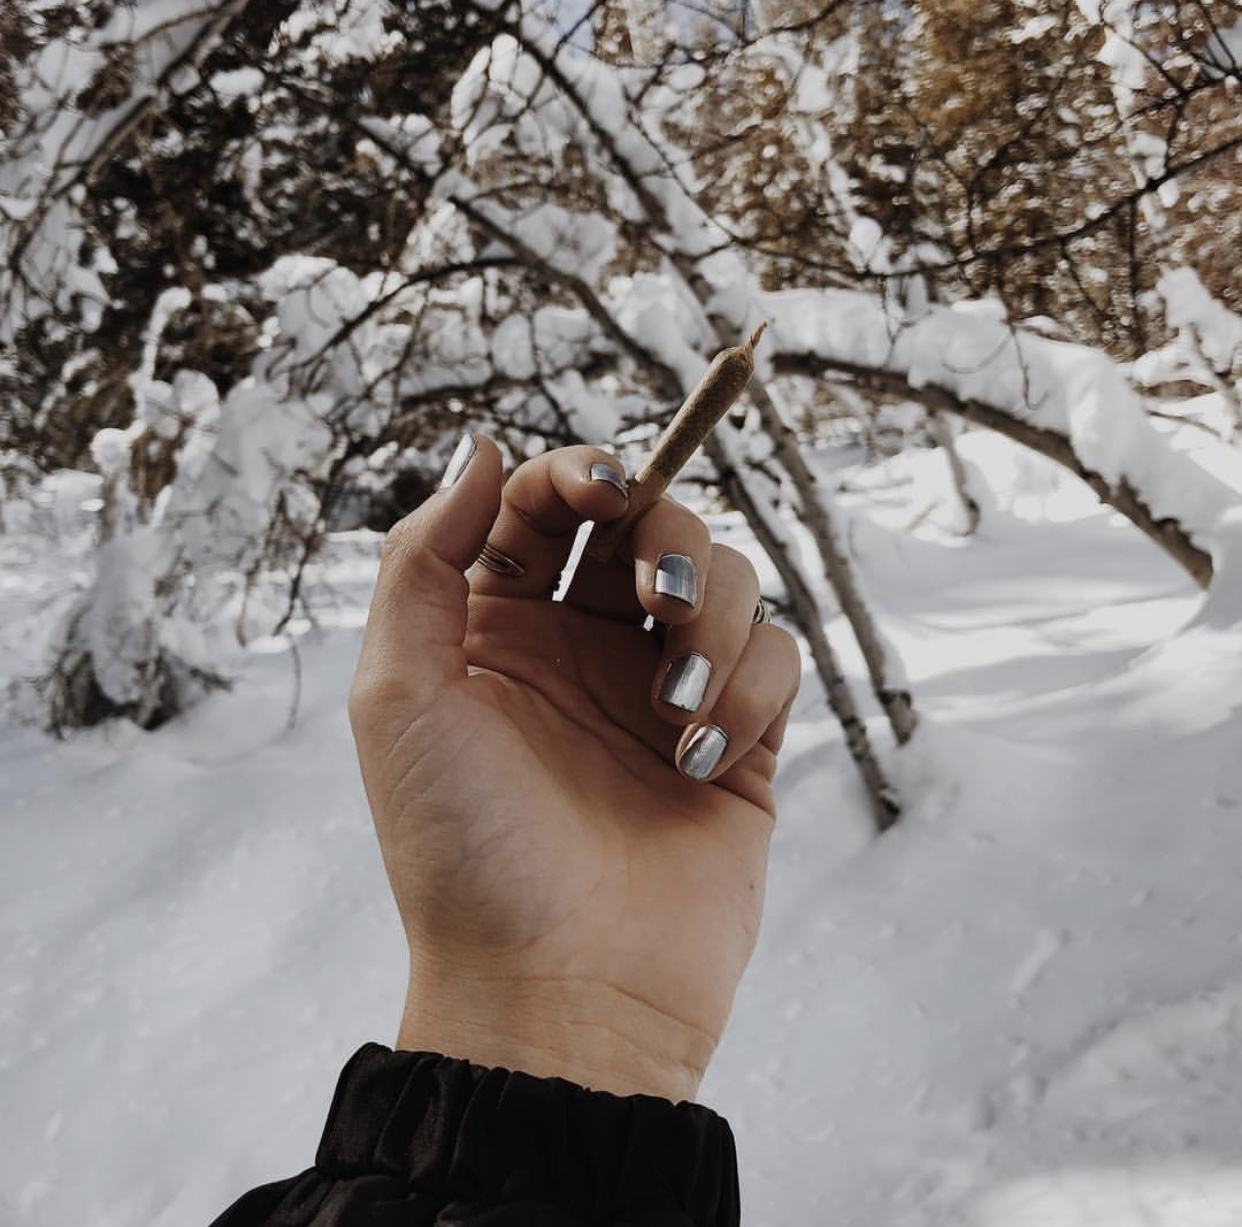 joint-nails-and-snow.jpeg